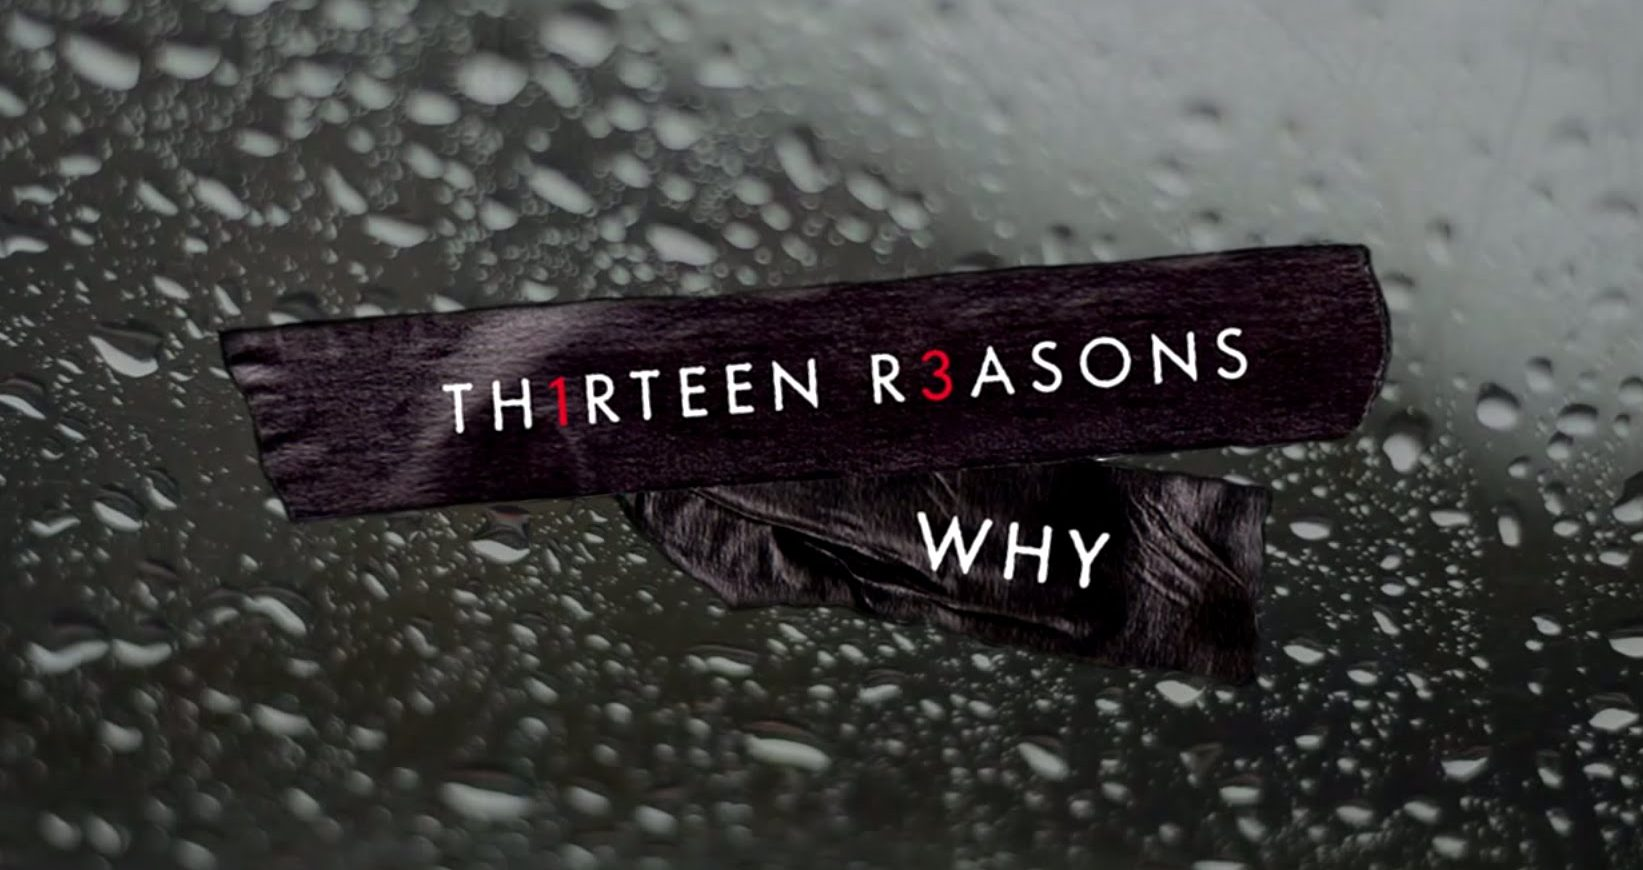 13 reasons why at http://thelifepile.com/2017/04/01/13-reasons-why-is-on-netflix/